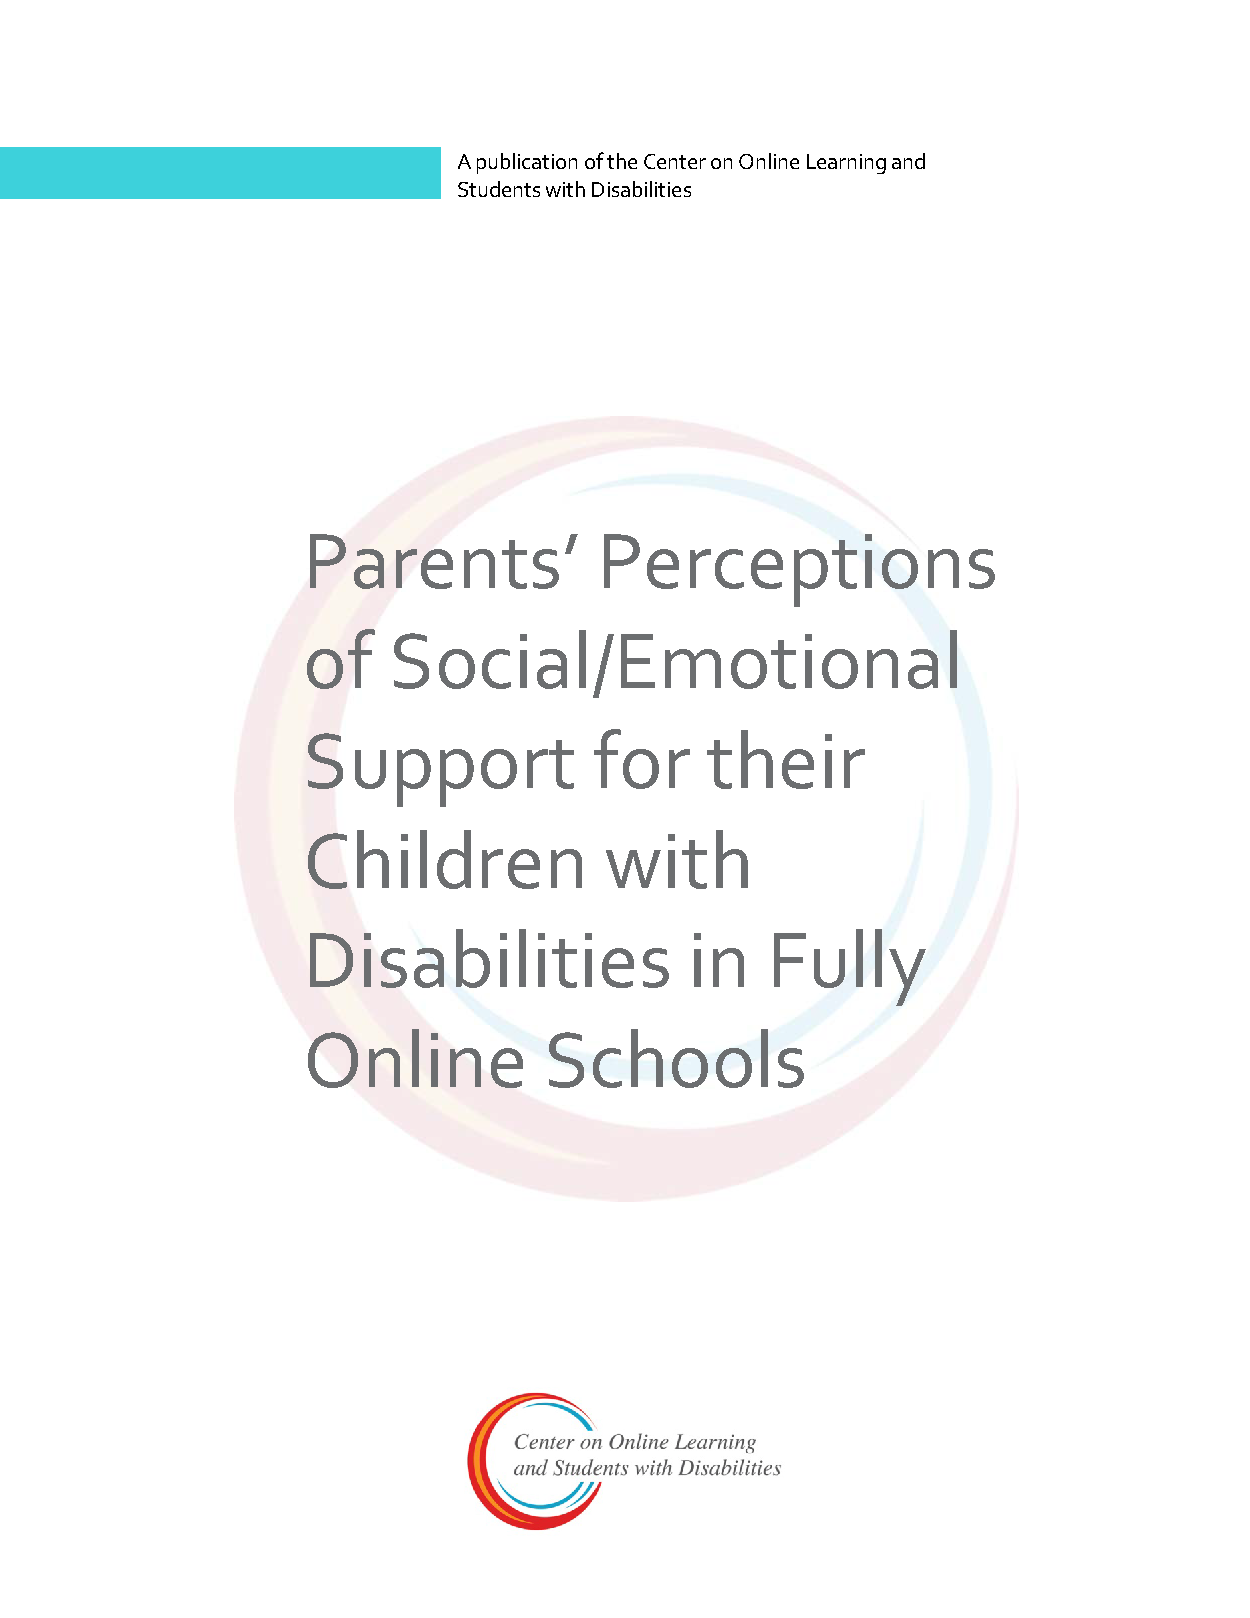 Parents' Perceptions Of Social/Emotional Support For Their Children With Disabilities In Fully Online Schools